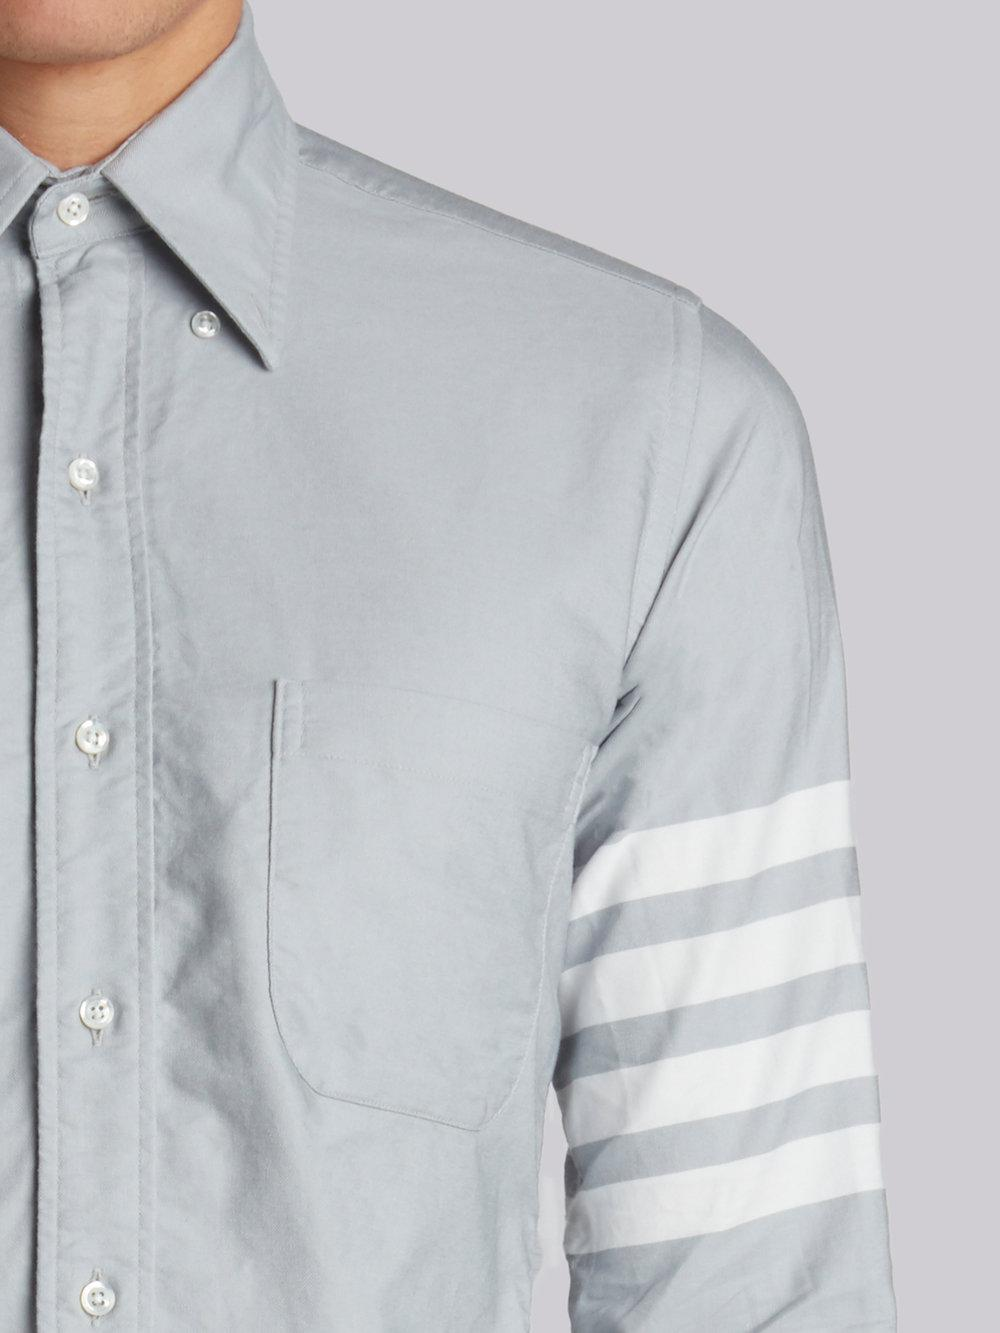 3022c5e363f Lyst - Thom Browne Long Sleeve Button Down With Woven 4-bar In ...